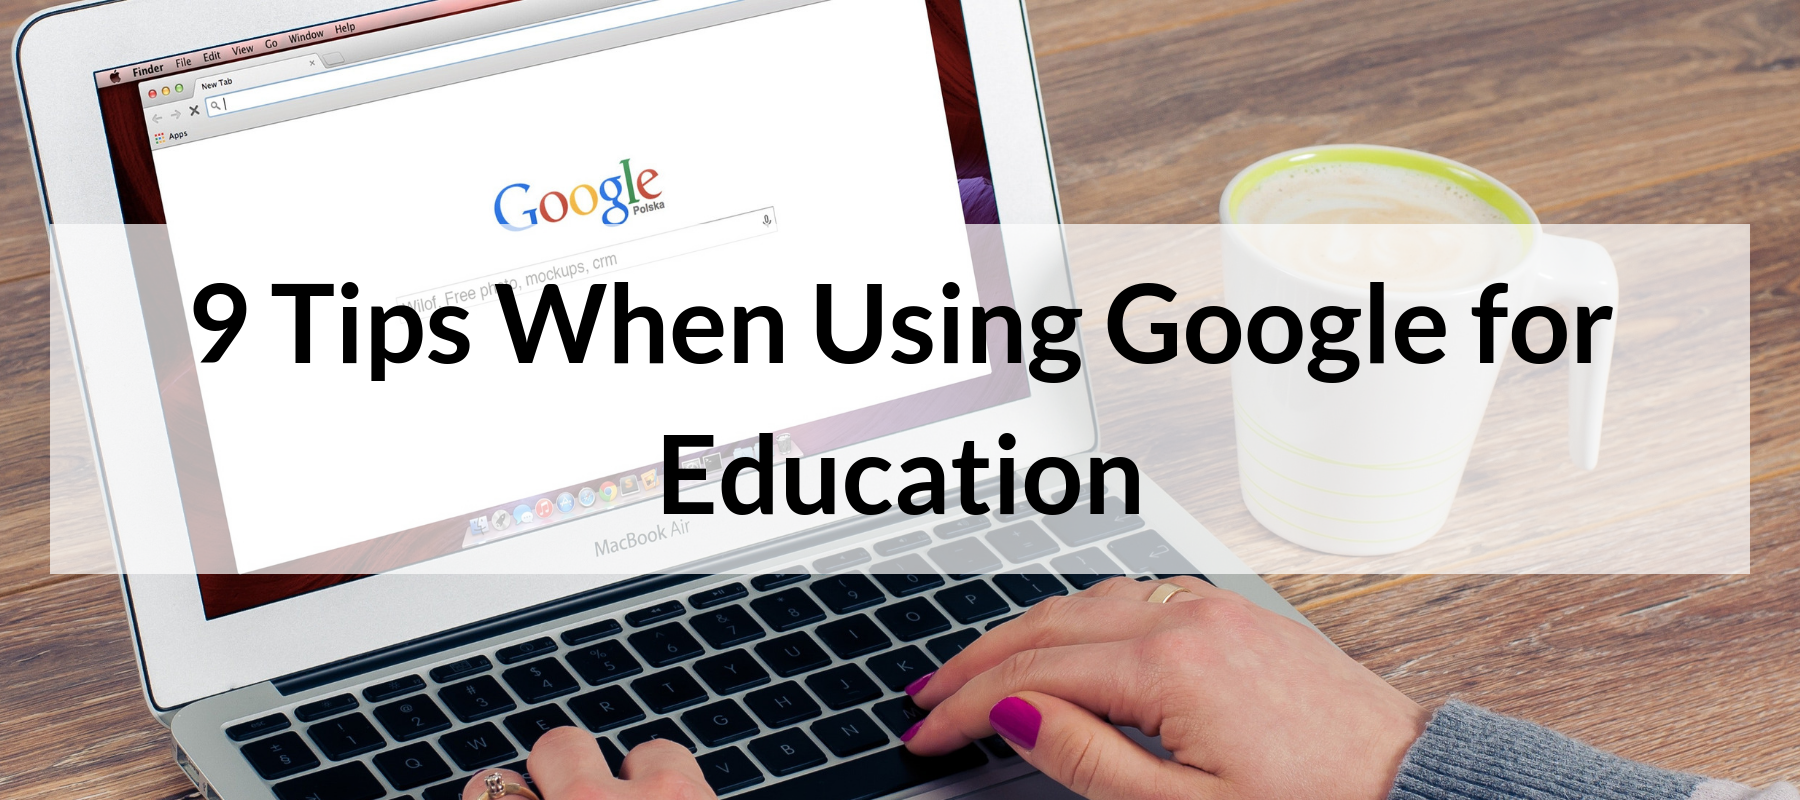 9 Tips When Using Google for Education